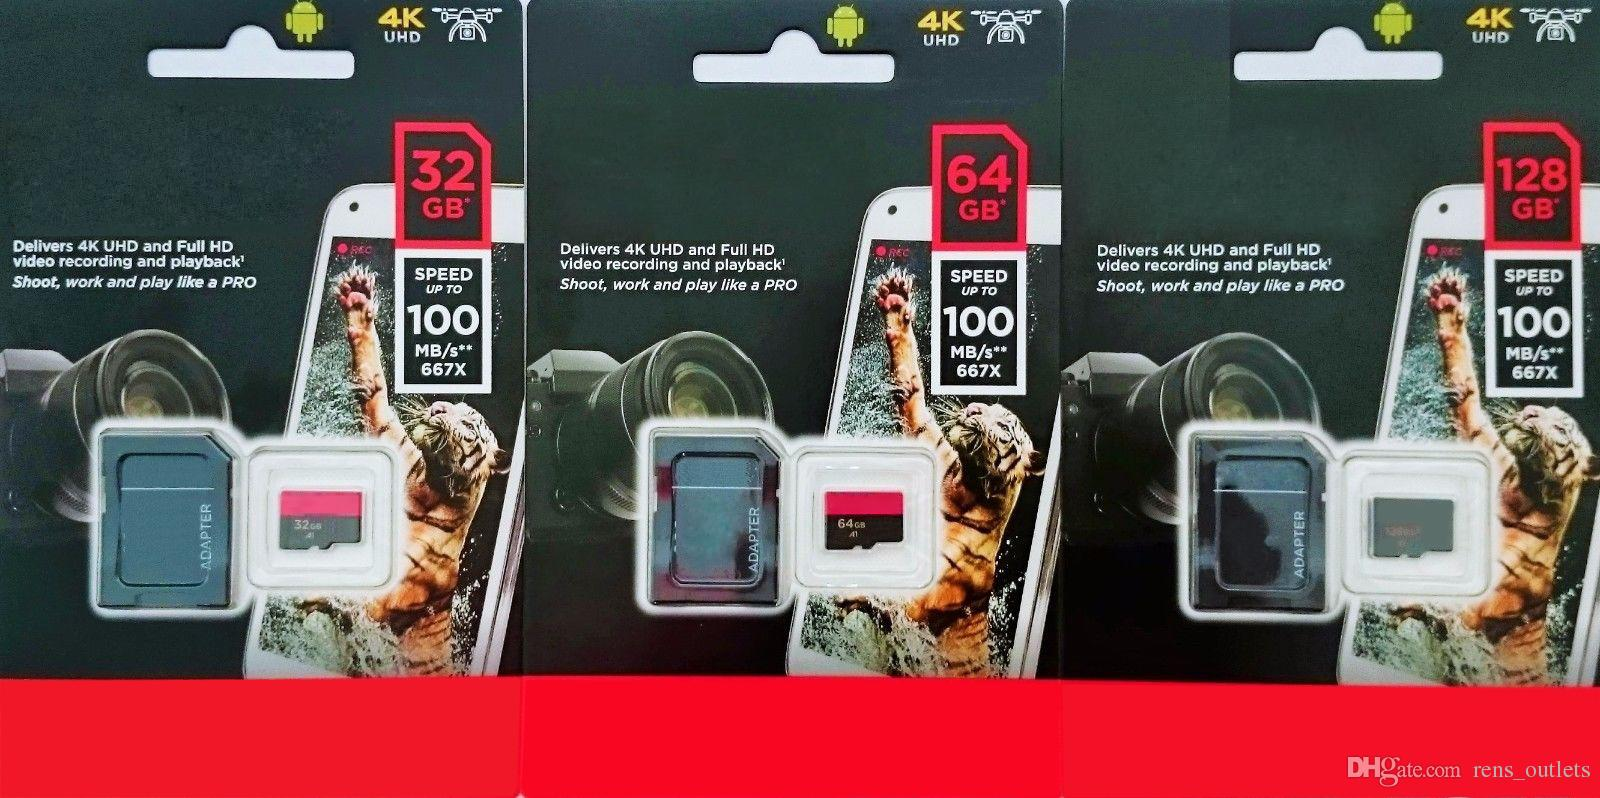 2020 Hot Selling Weiß Android 128G 64GB 32GB Class 10 Speicher TF-Flash-Karte freien SD-Adapter mit Blister Verpackung